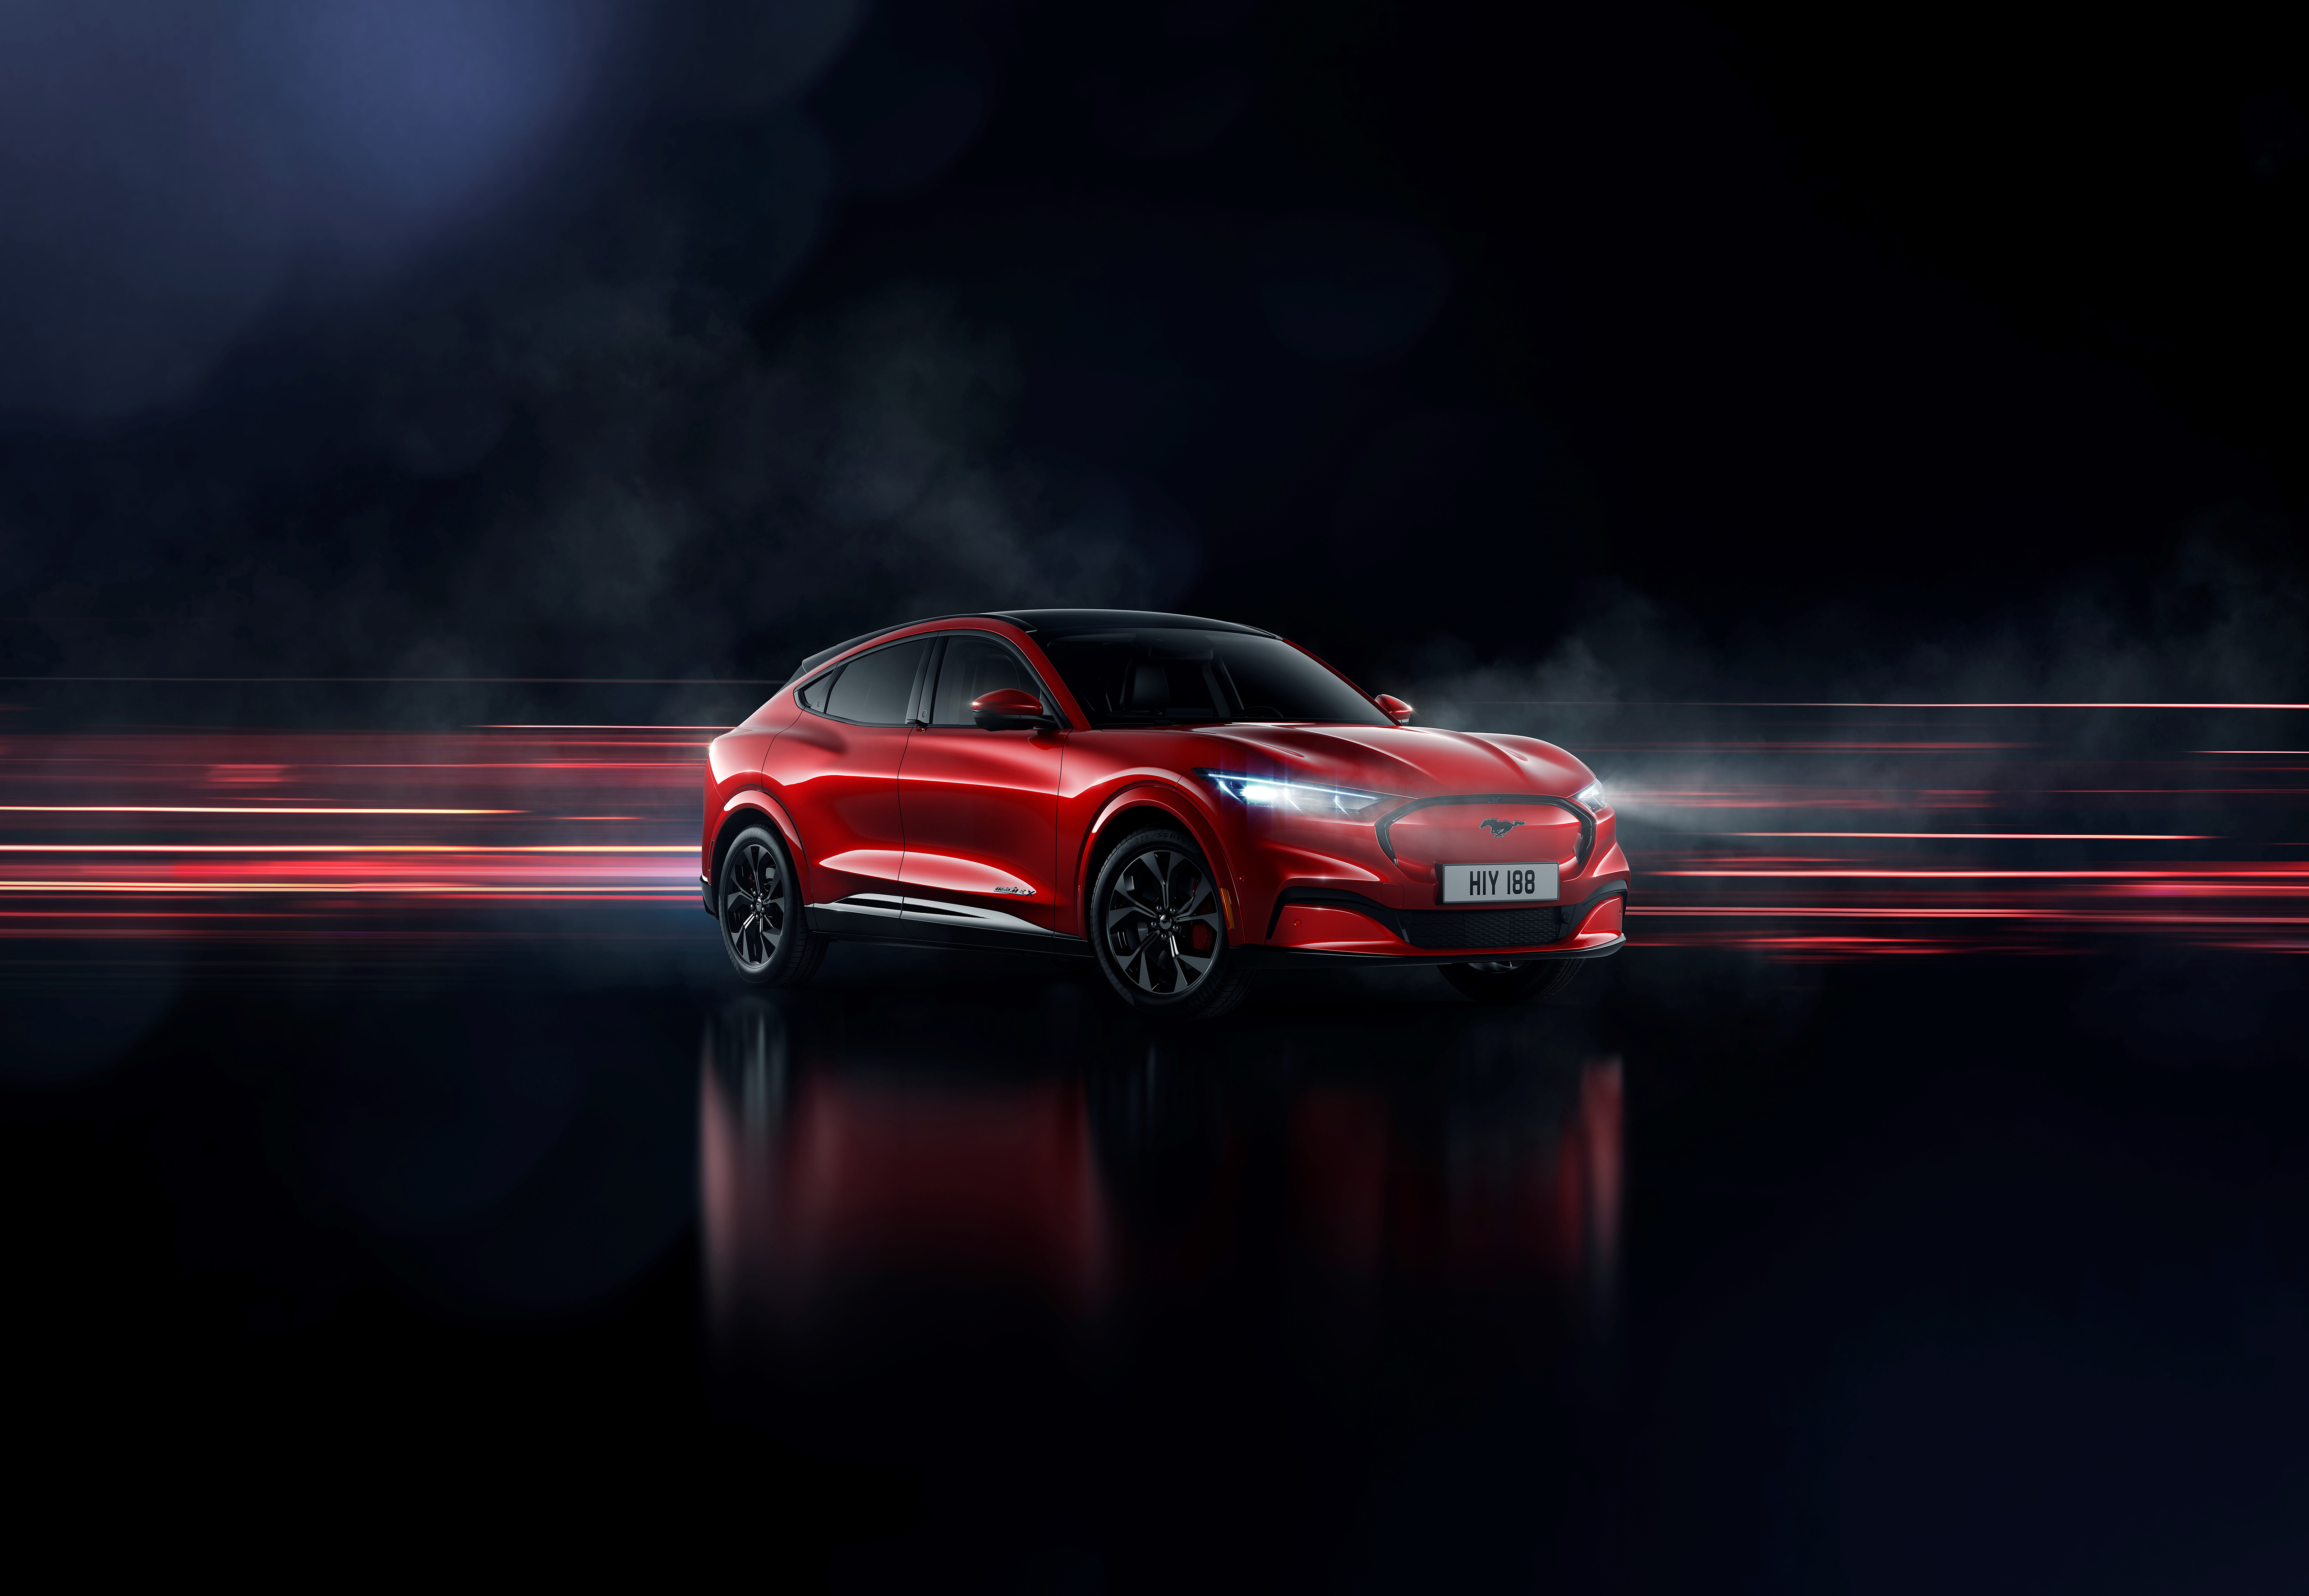 Ford Mustang Mach E 4k Wallpaper Electric Crossover Electric Suv 2020 5k Cars 782